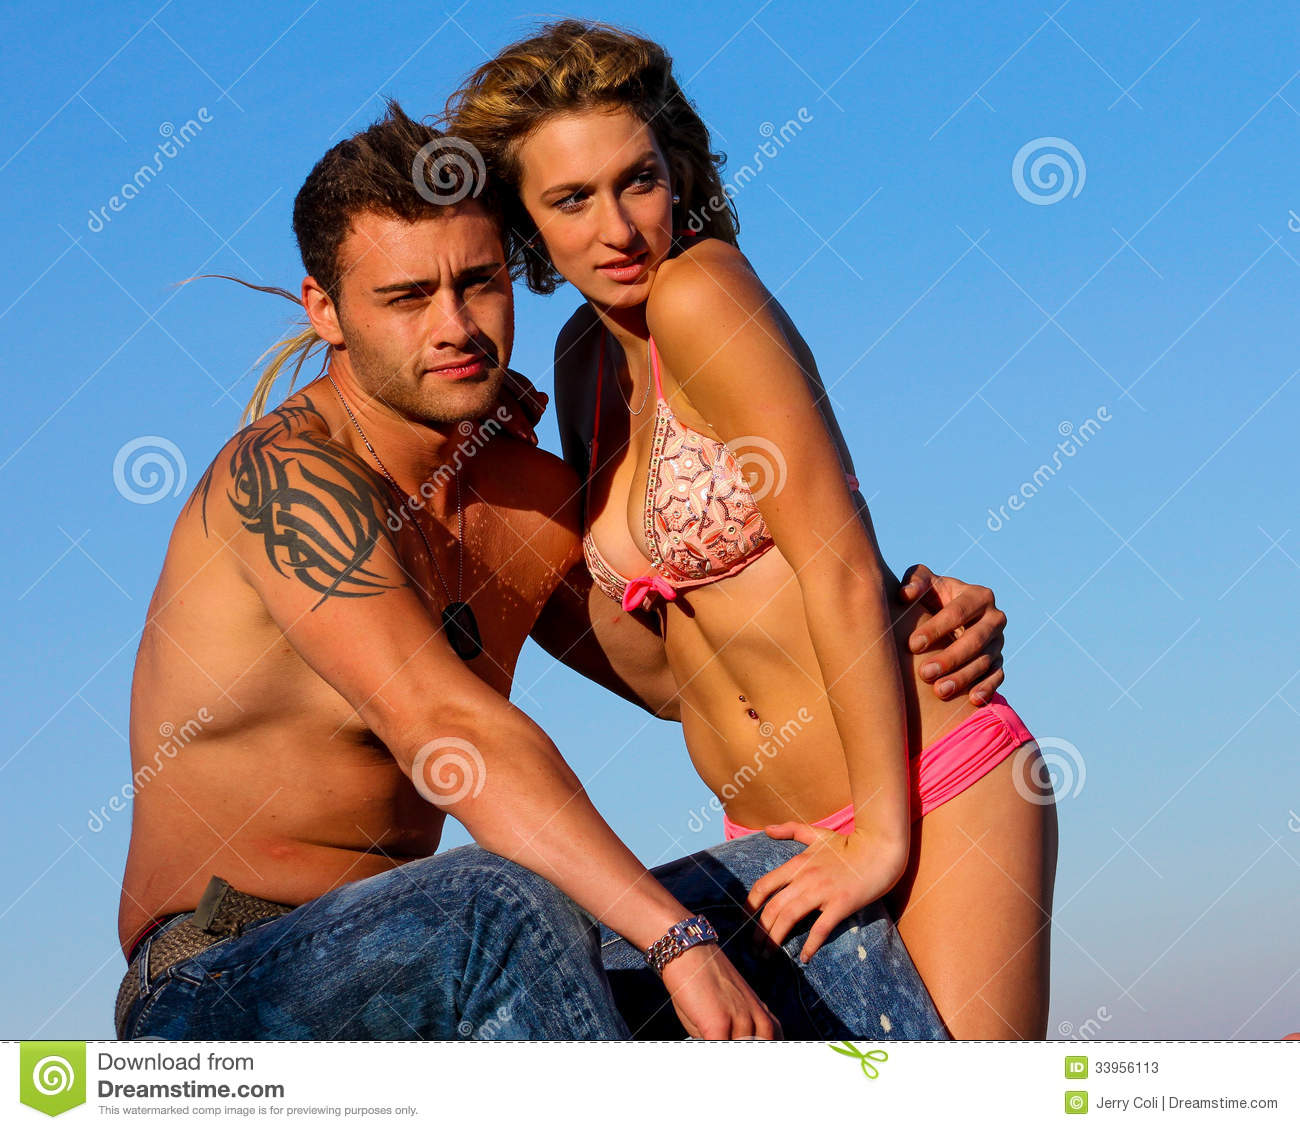 Couple At The Beach Stock Image Image Of Caucasian: Couple At The Beach Stock Image. Image Of Love, Tatoos